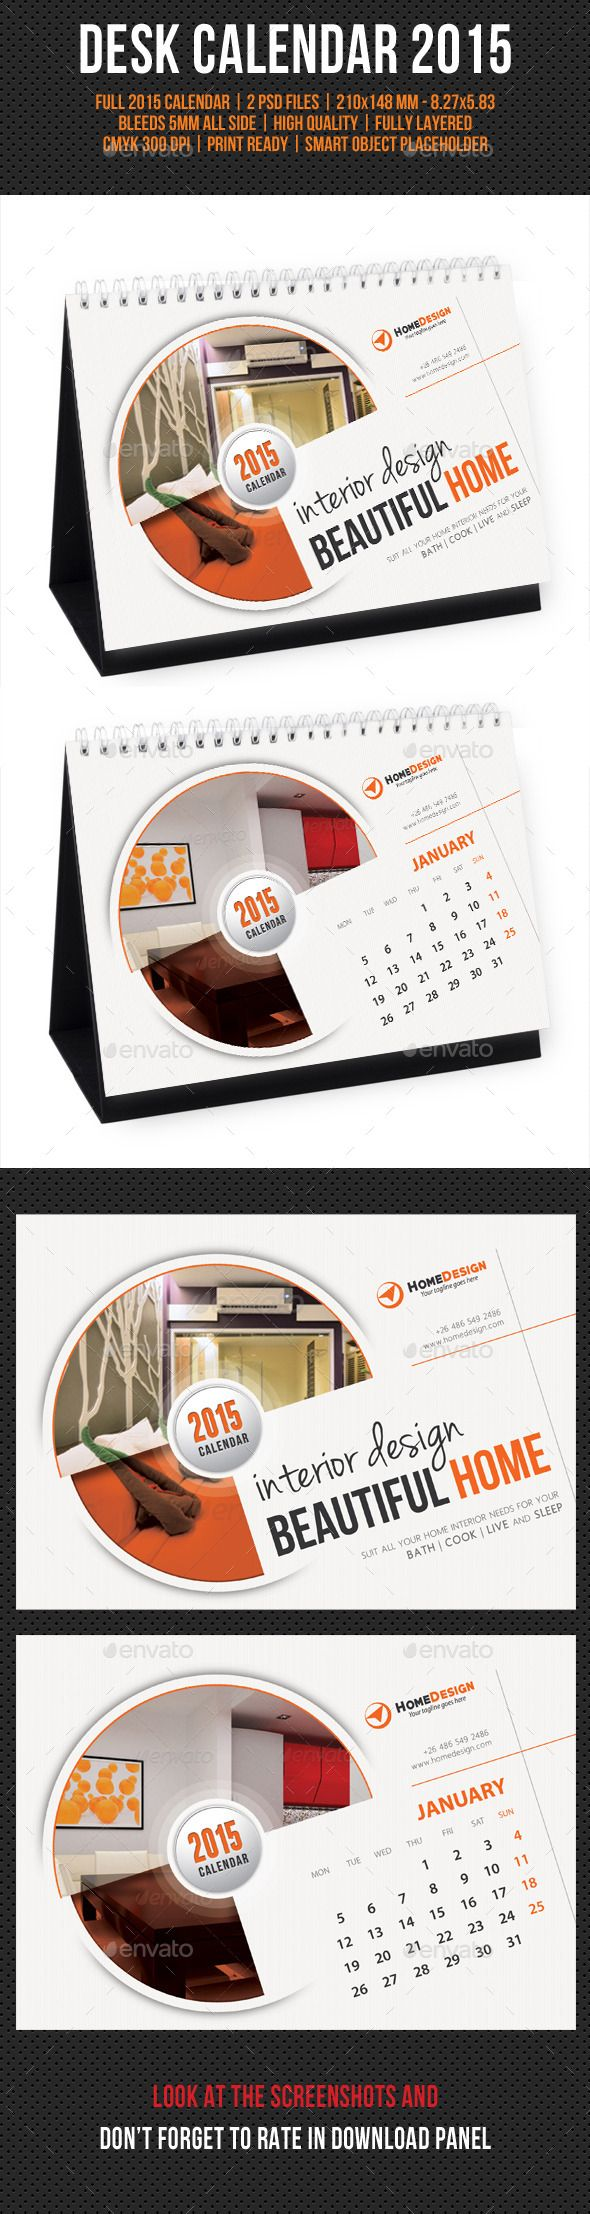 Creative Desk Calendar 2015 Template | #deskcalendar2015 #calendartemplate2015 #calendar2015 | Buy and Download: http://graphicriver.net/item/creative-desk-calendar-2015-v06/9635075?ref=ksioks